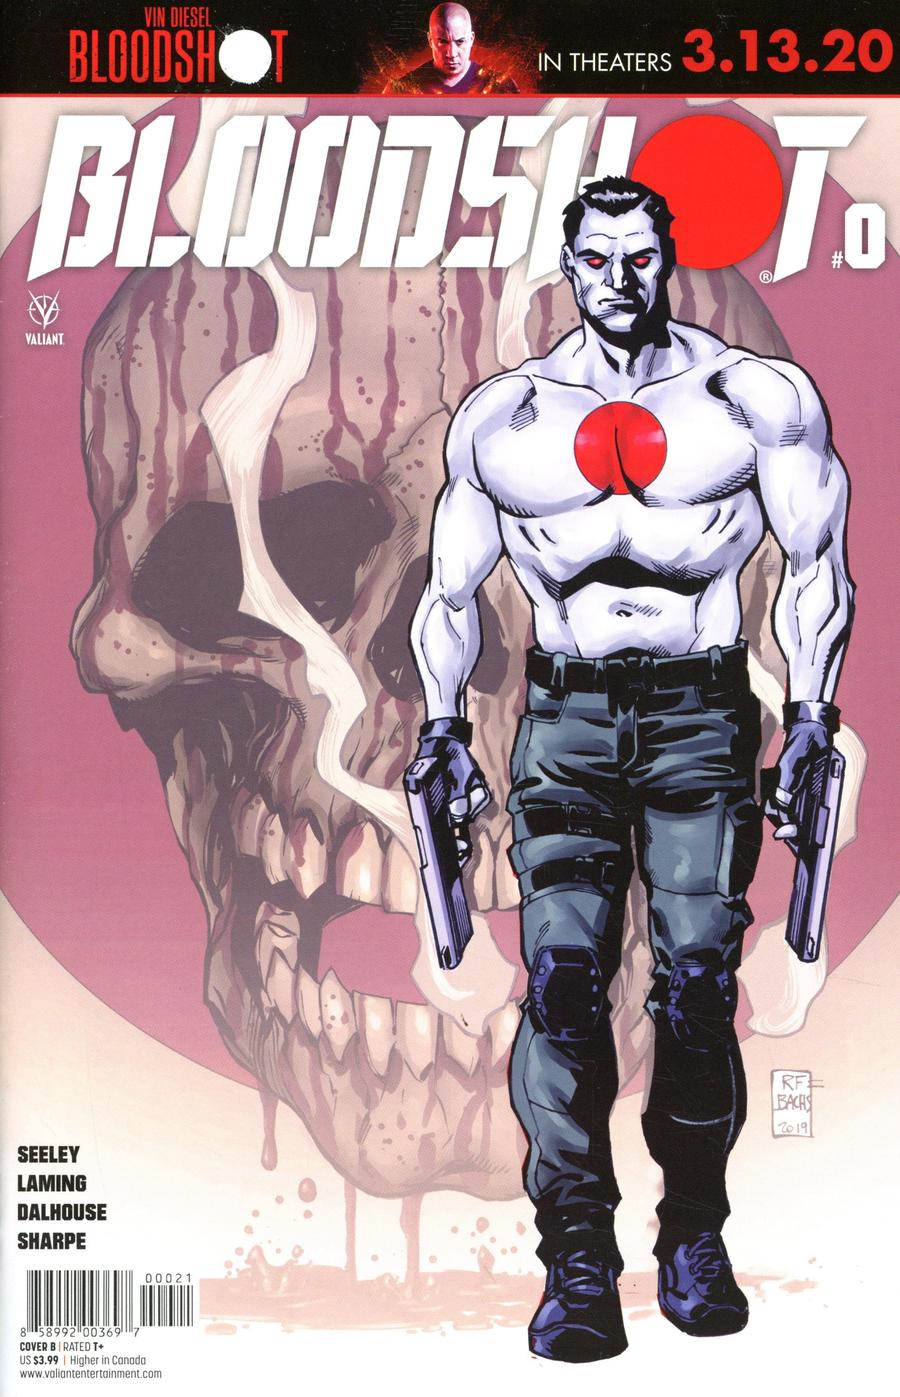 Bloodshot Vol 4 #0 Cover B Variant Ramon Bachs Cover